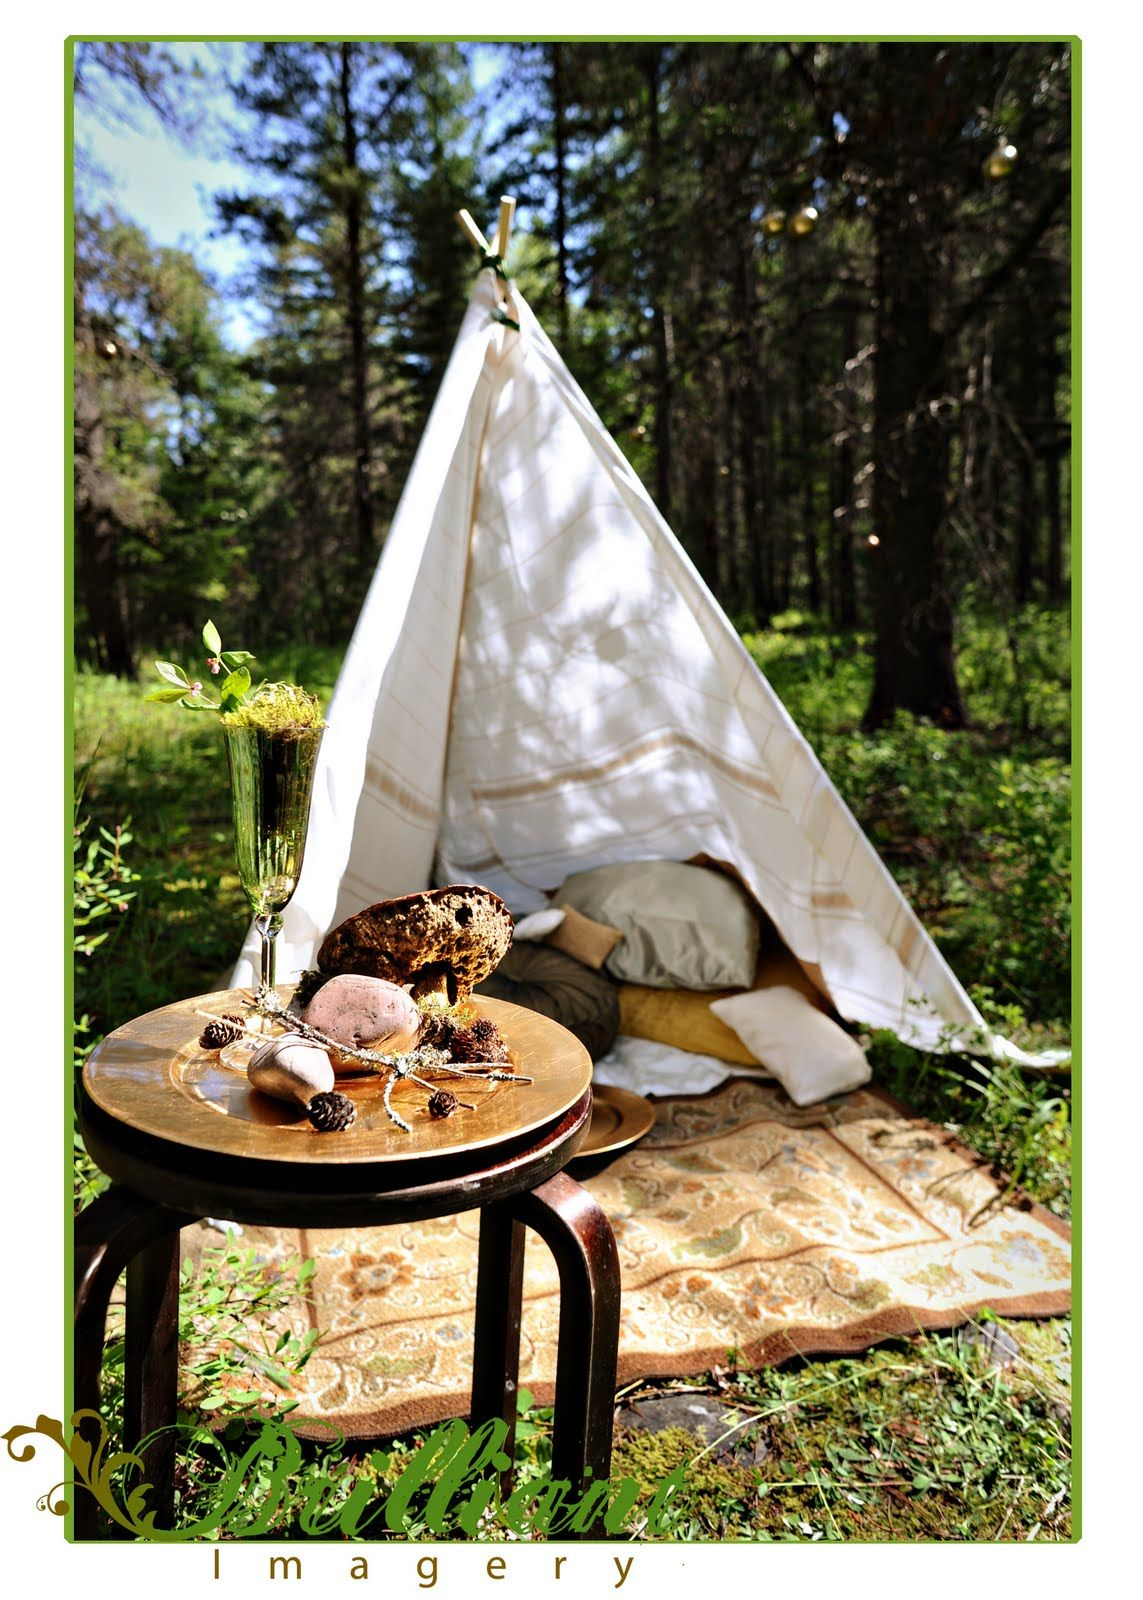 Montana Gl&ing Inspiration - By Rachel Garcia of Brilliant Imagery a boutique wedding photography studio specializing in creative weddings and trash the ... & glamping tent ideas - Google Search | camping party | Pinterest ...